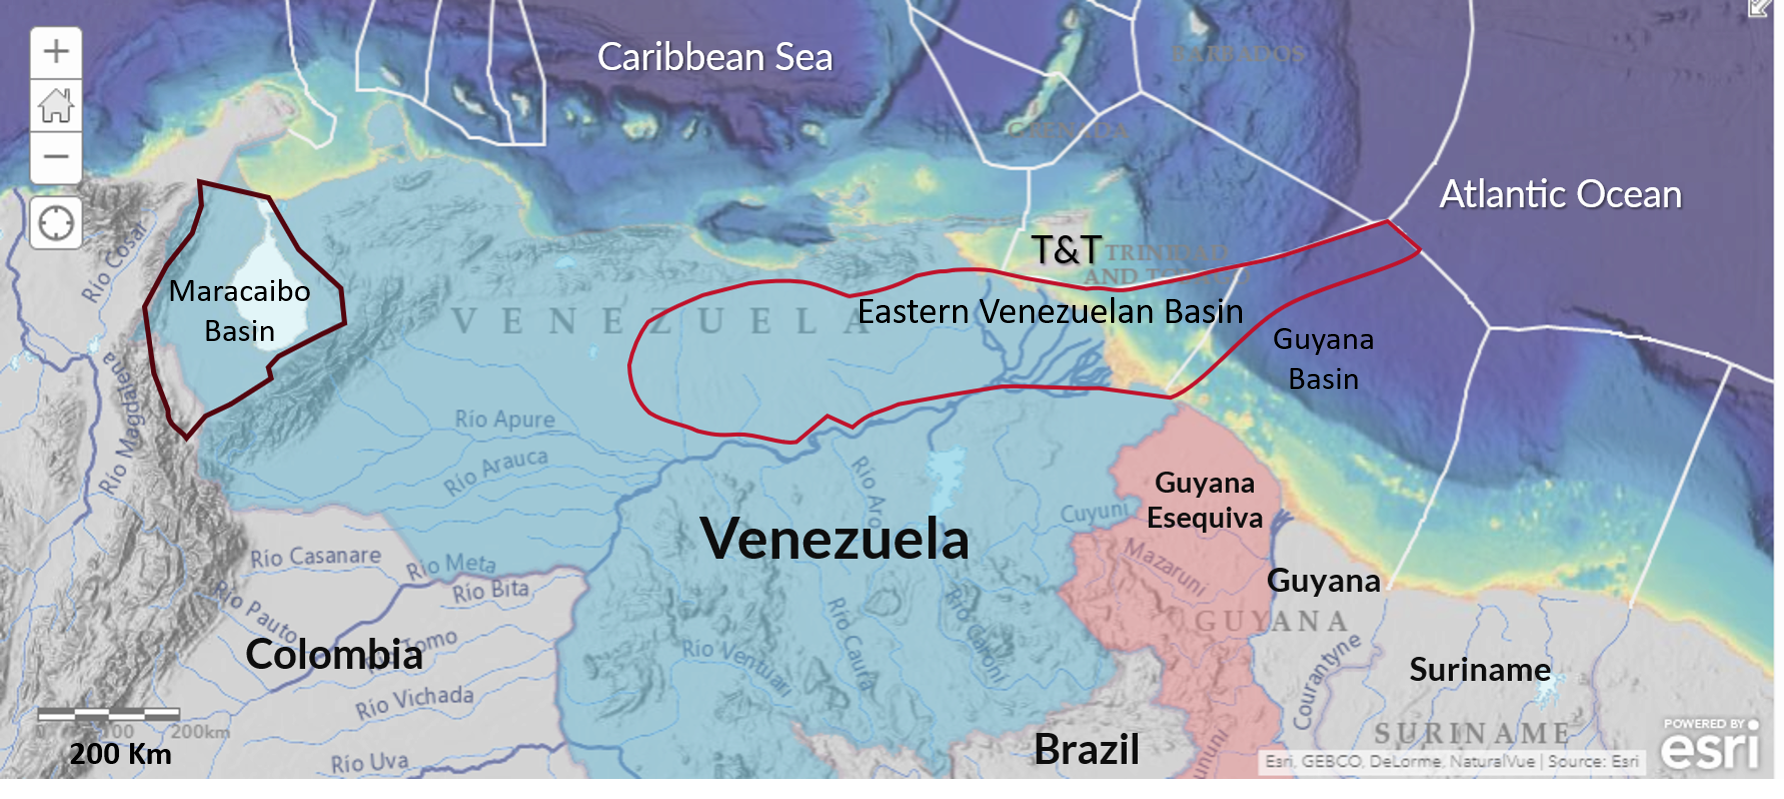 Resource Potential of Eastern Venezuelan and Maracaibo Basins